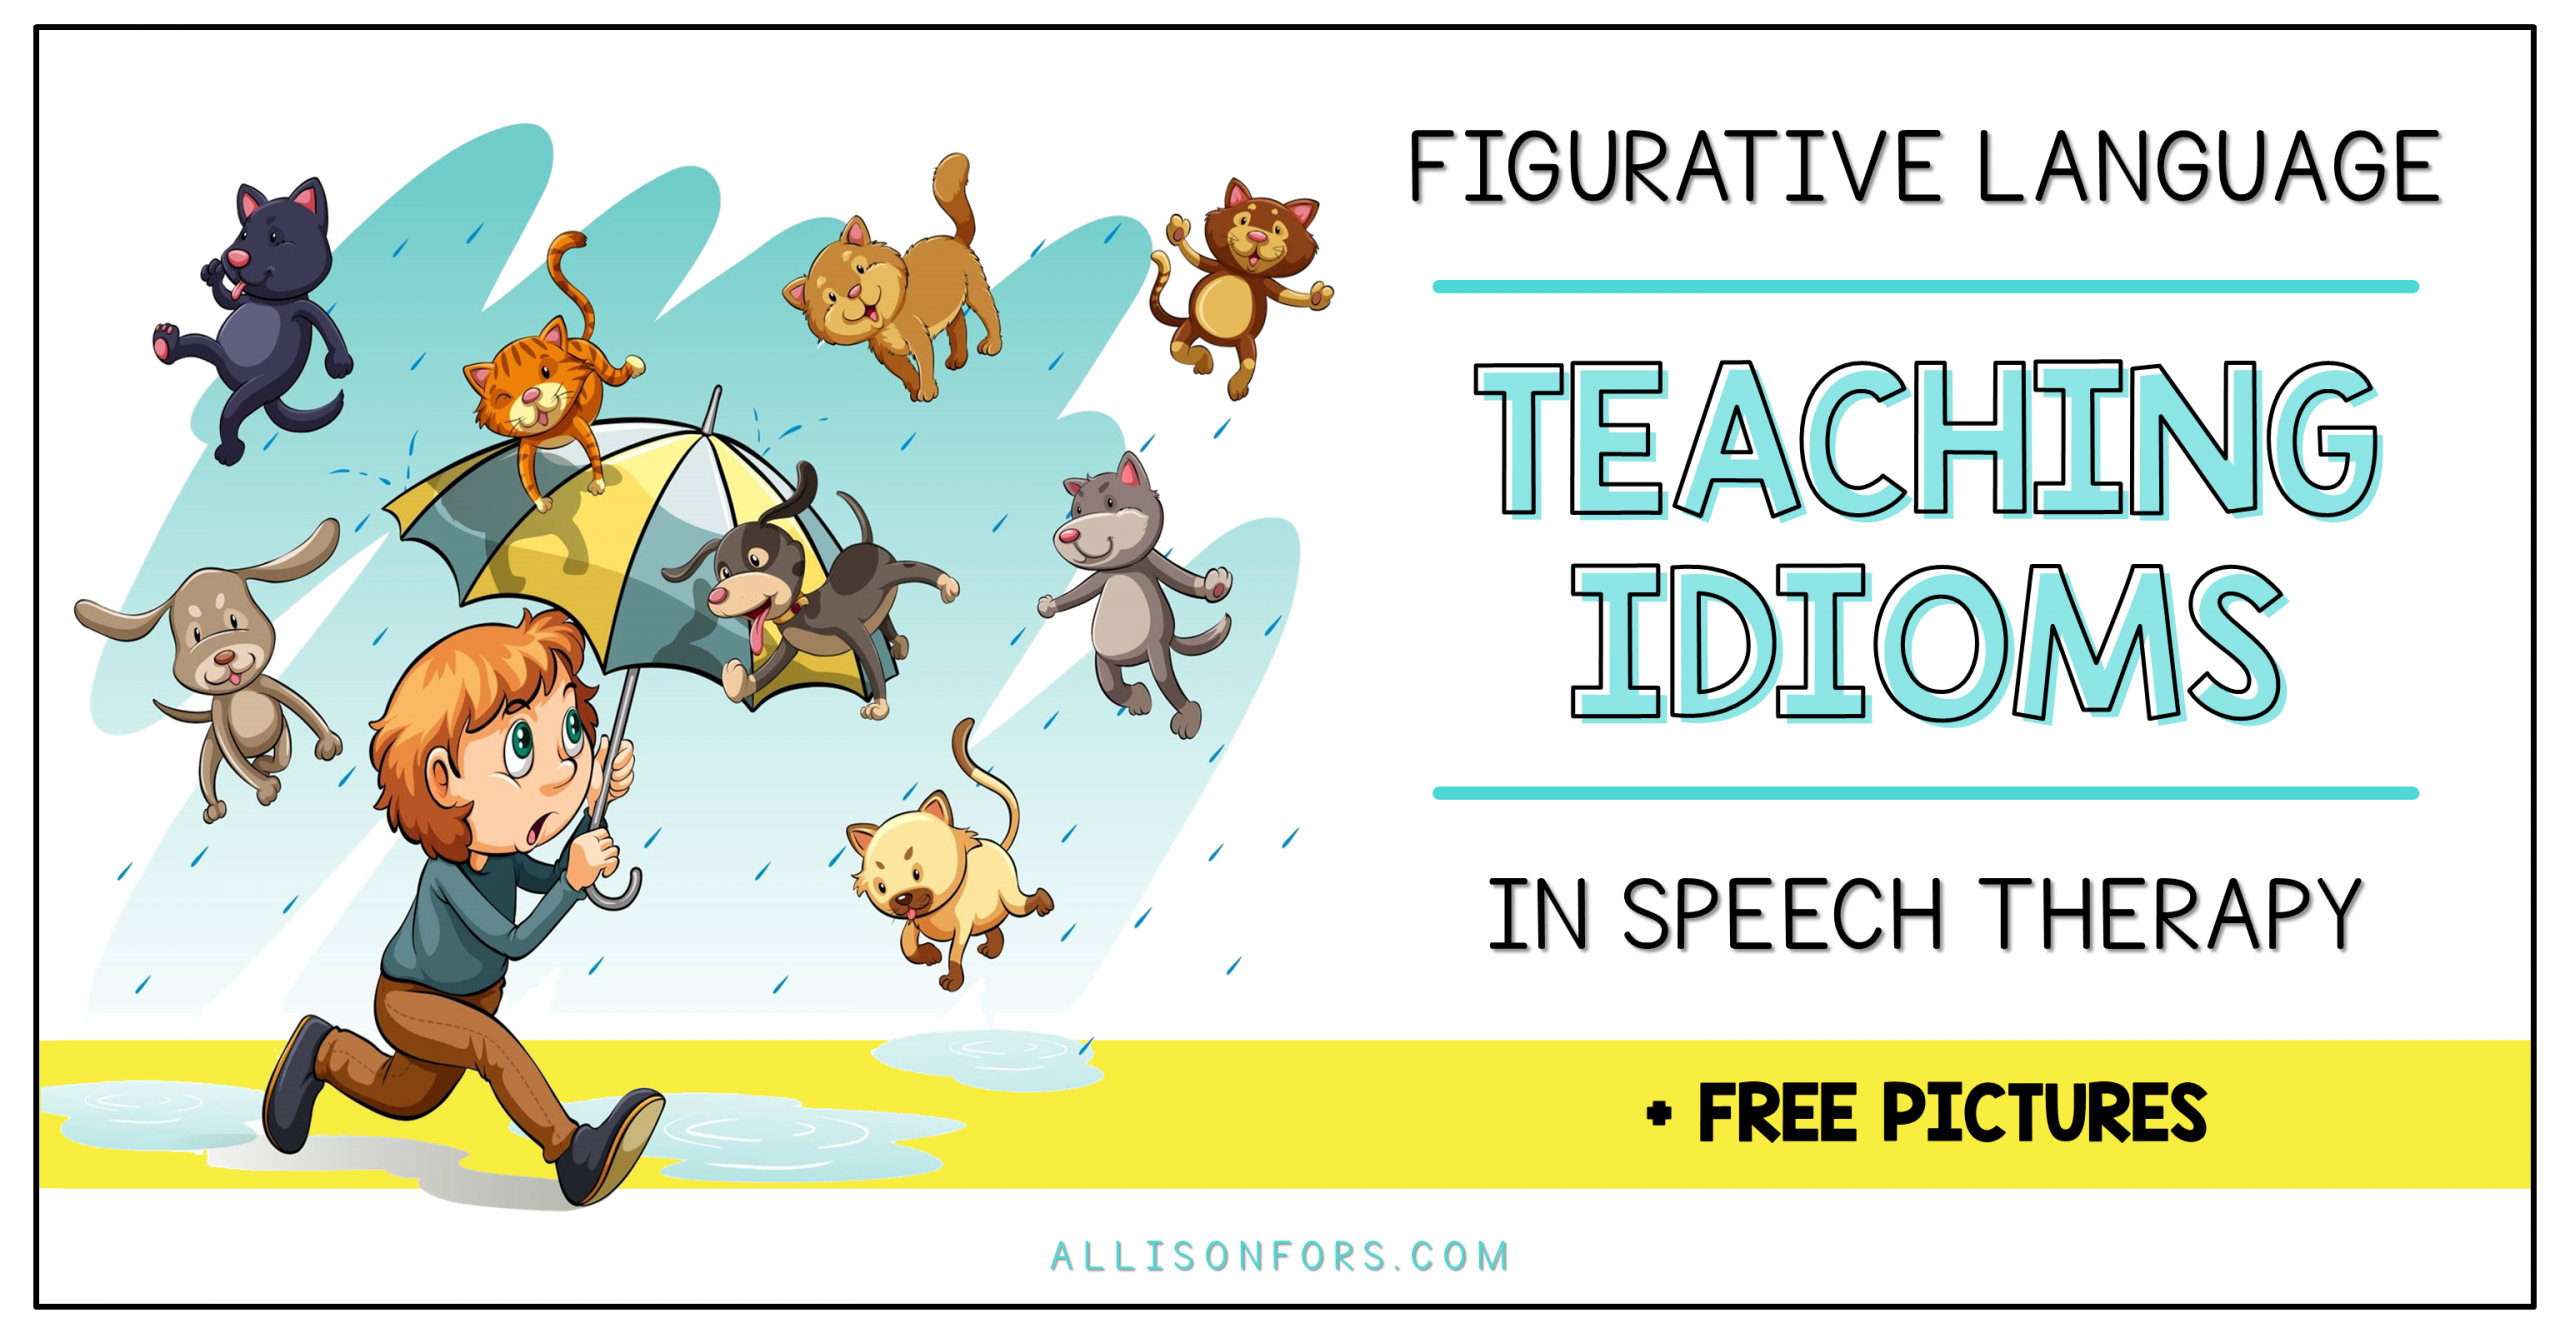 Figurative Language: Idioms in Speech Therapy